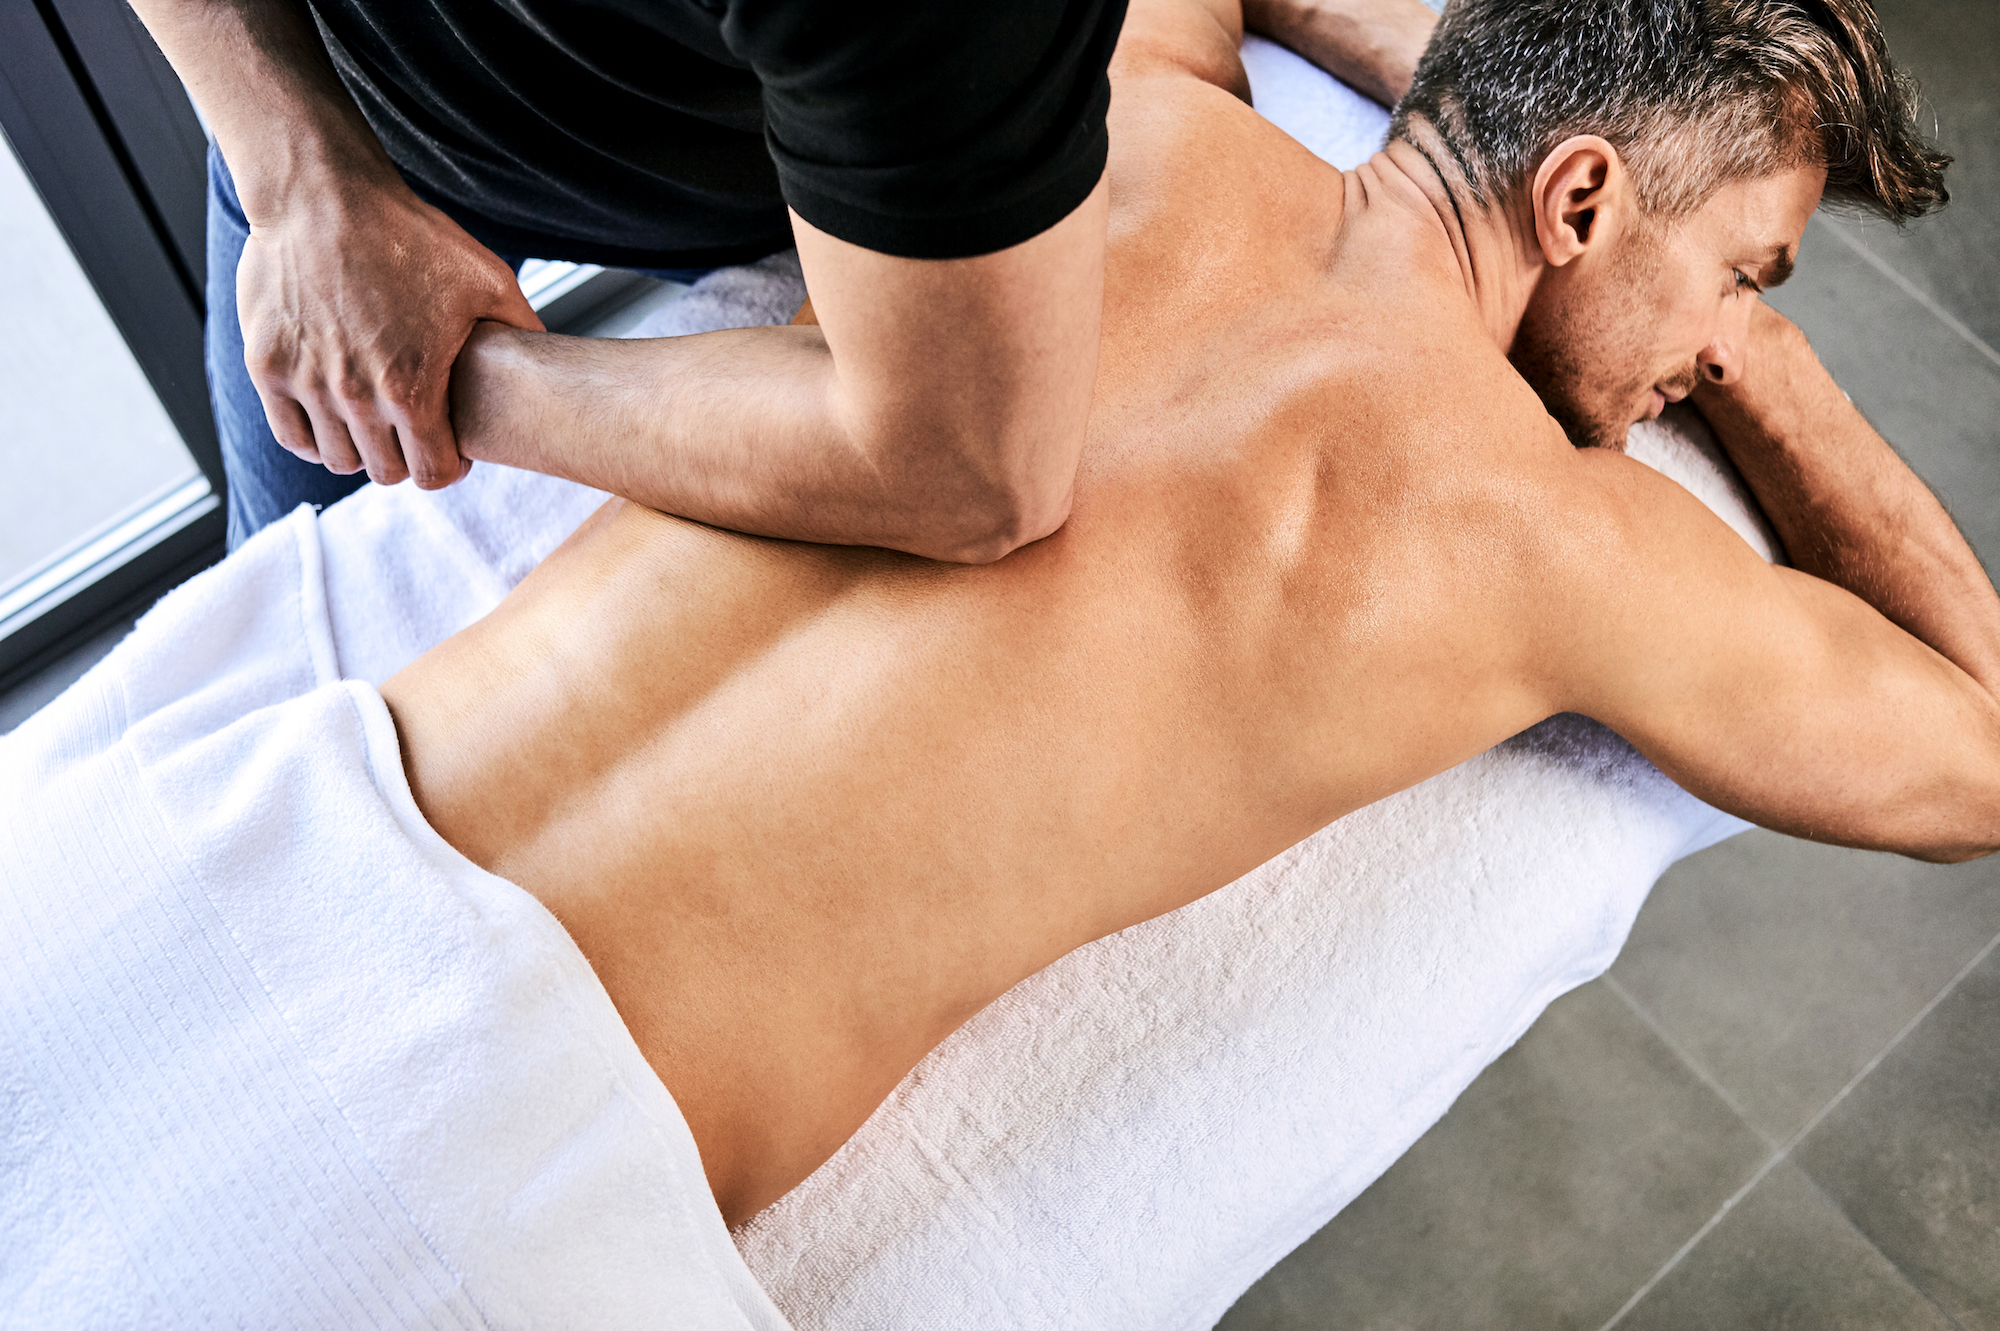 Massage Cupping & Deep Tissue30+30 MinutesPrice Range$70 - Thirty minutes of deep tissue massage combined with 30 minutes of massage cupping. See individual services for a more detailed description of what each services has to offer.